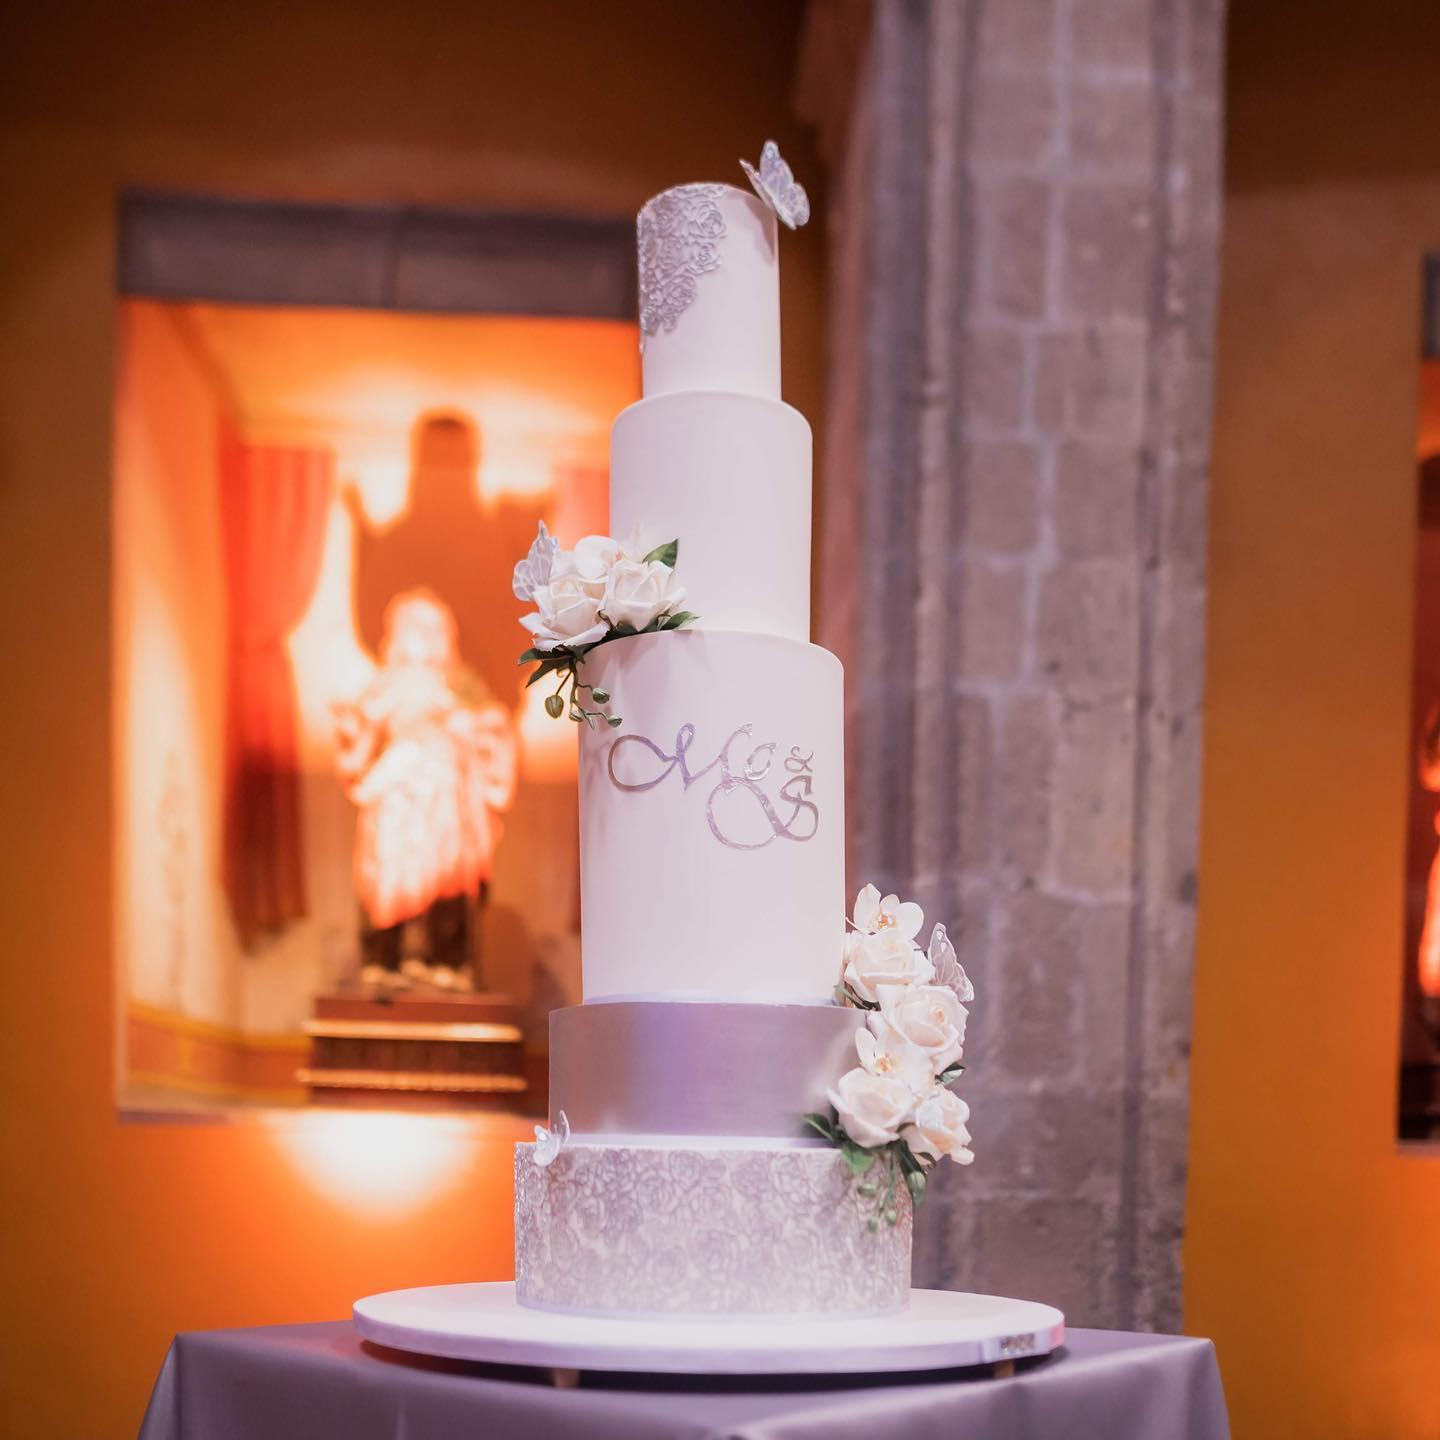 Chris Aranda Chris Aranda Cake Design Wedding Elegant 13